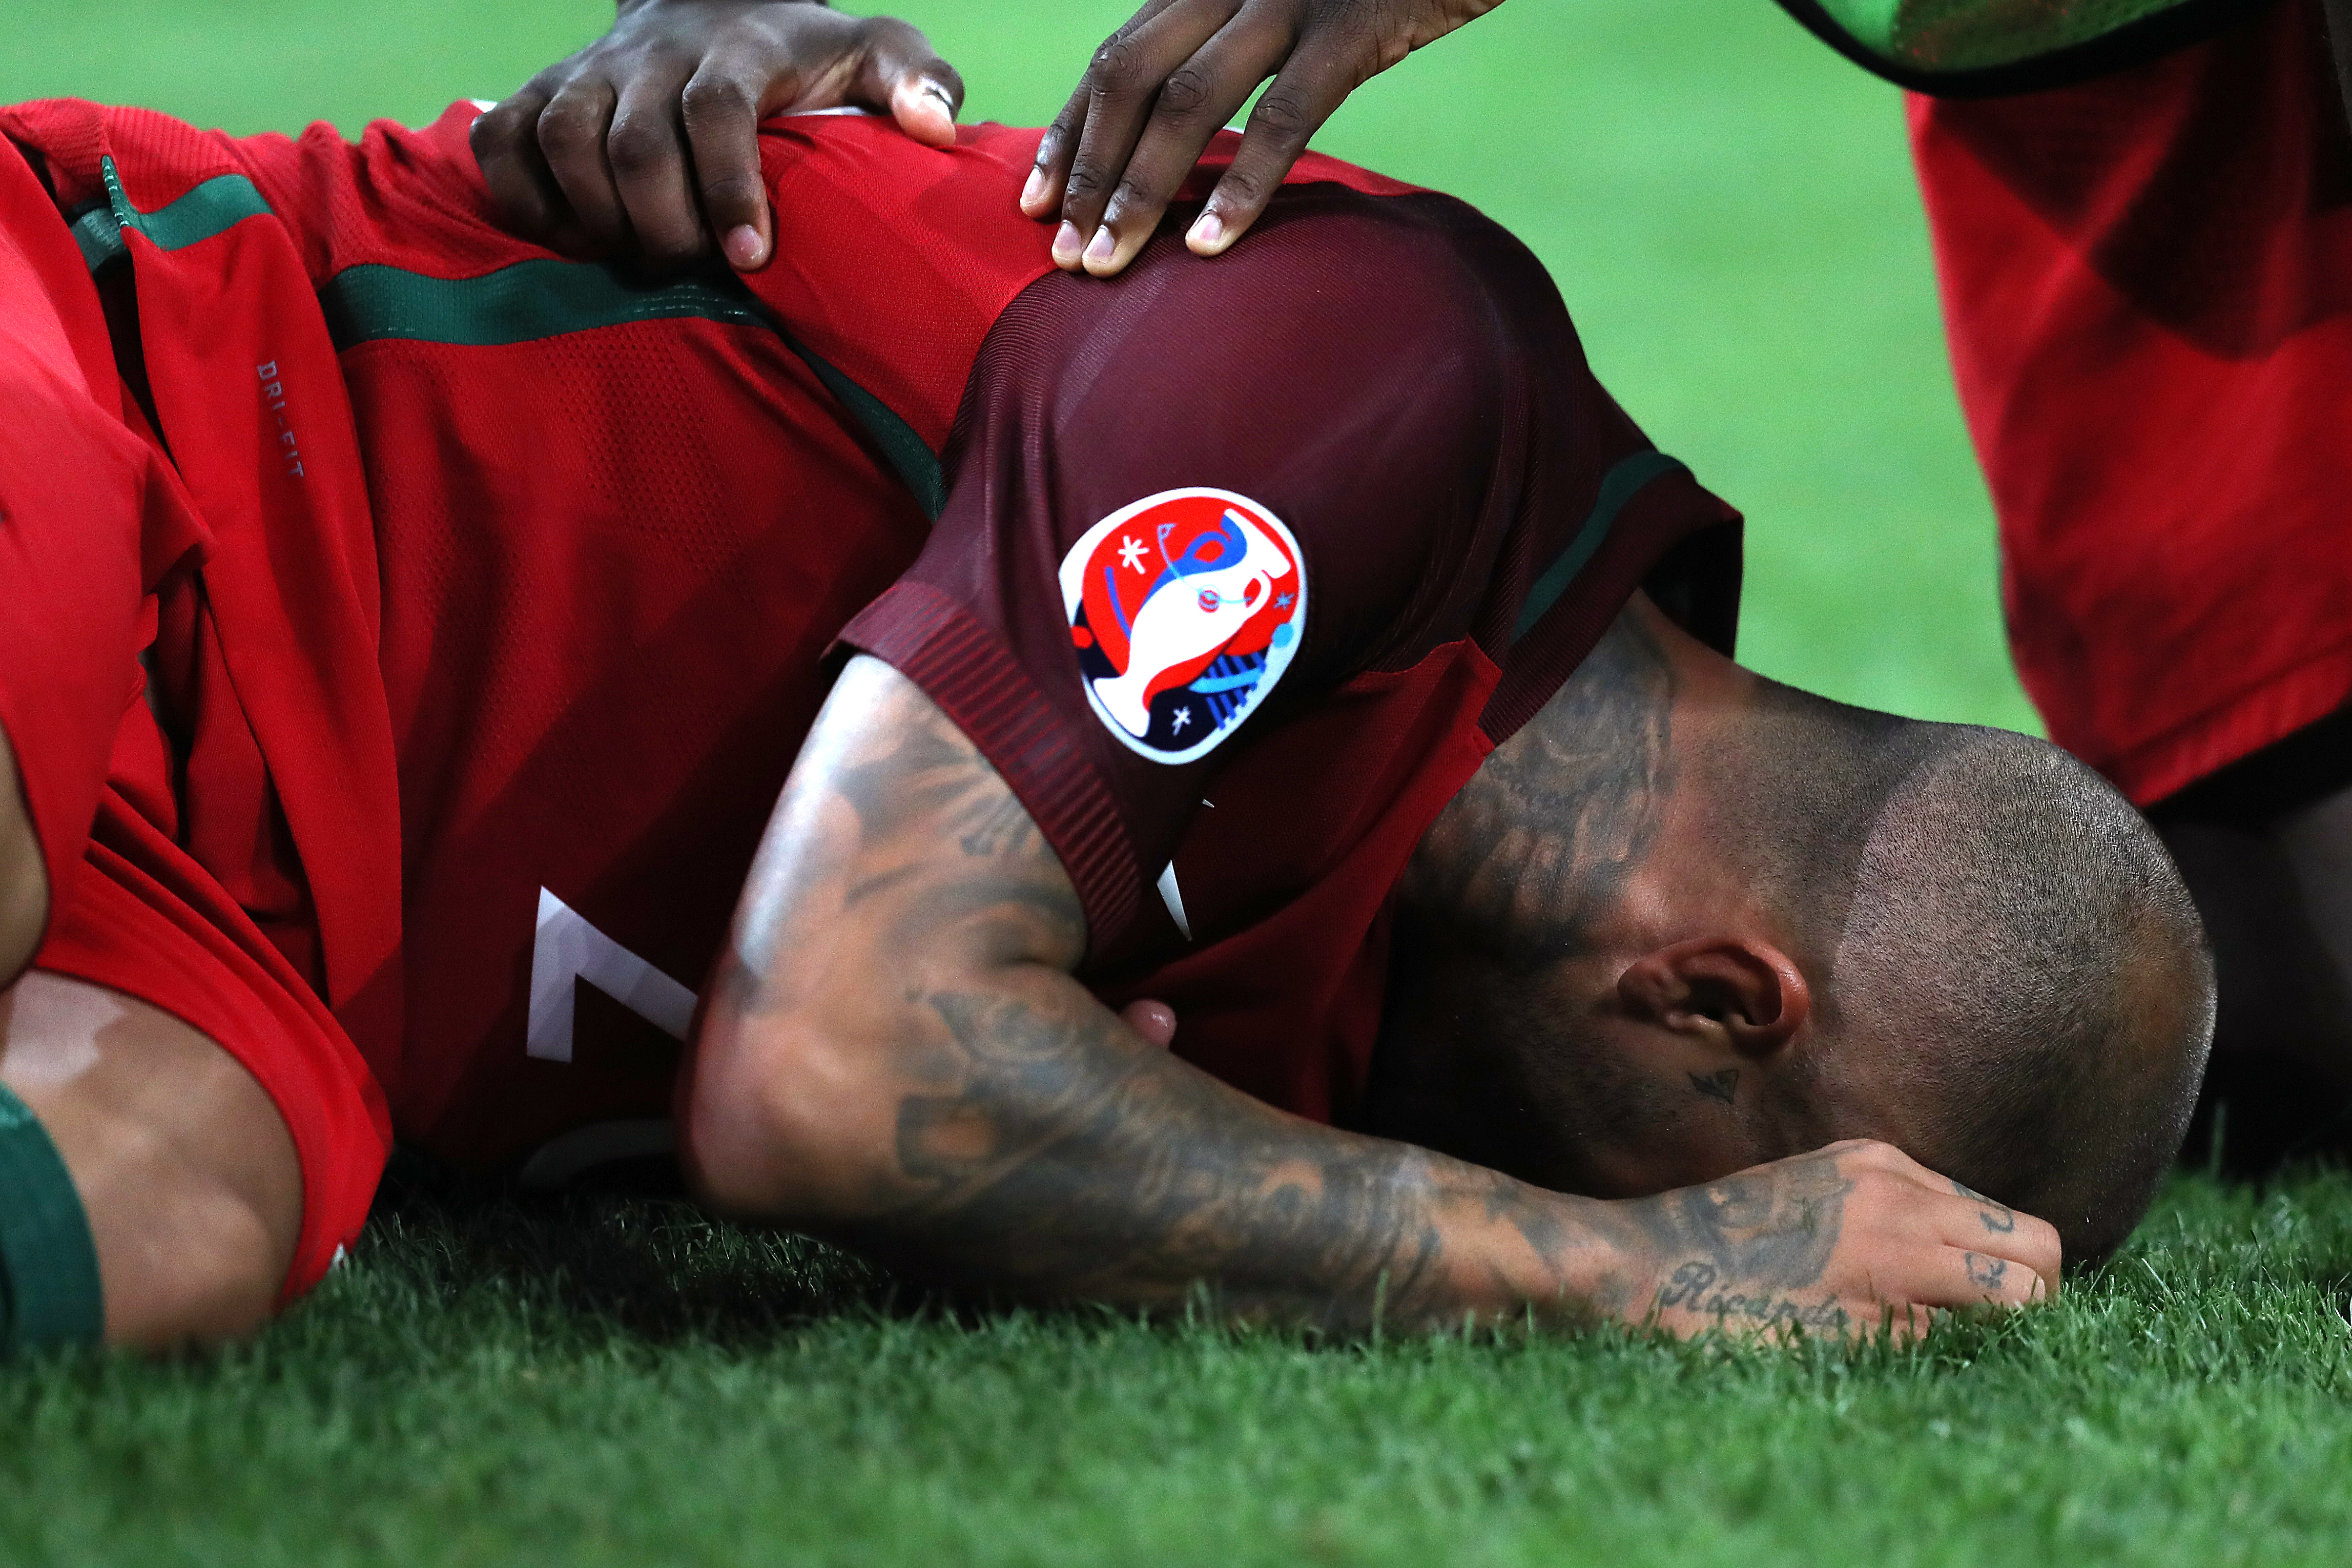 Portugal's forward Ricardo Quaresma celebrates after scoring the winning goal in a penalty shoot-out during the Euro 2016 quarter-final football match between Poland and Portugal at the Stade Velodrome in Marseille on June 30, 2016. / AFP PHOTO / Valery HACHE